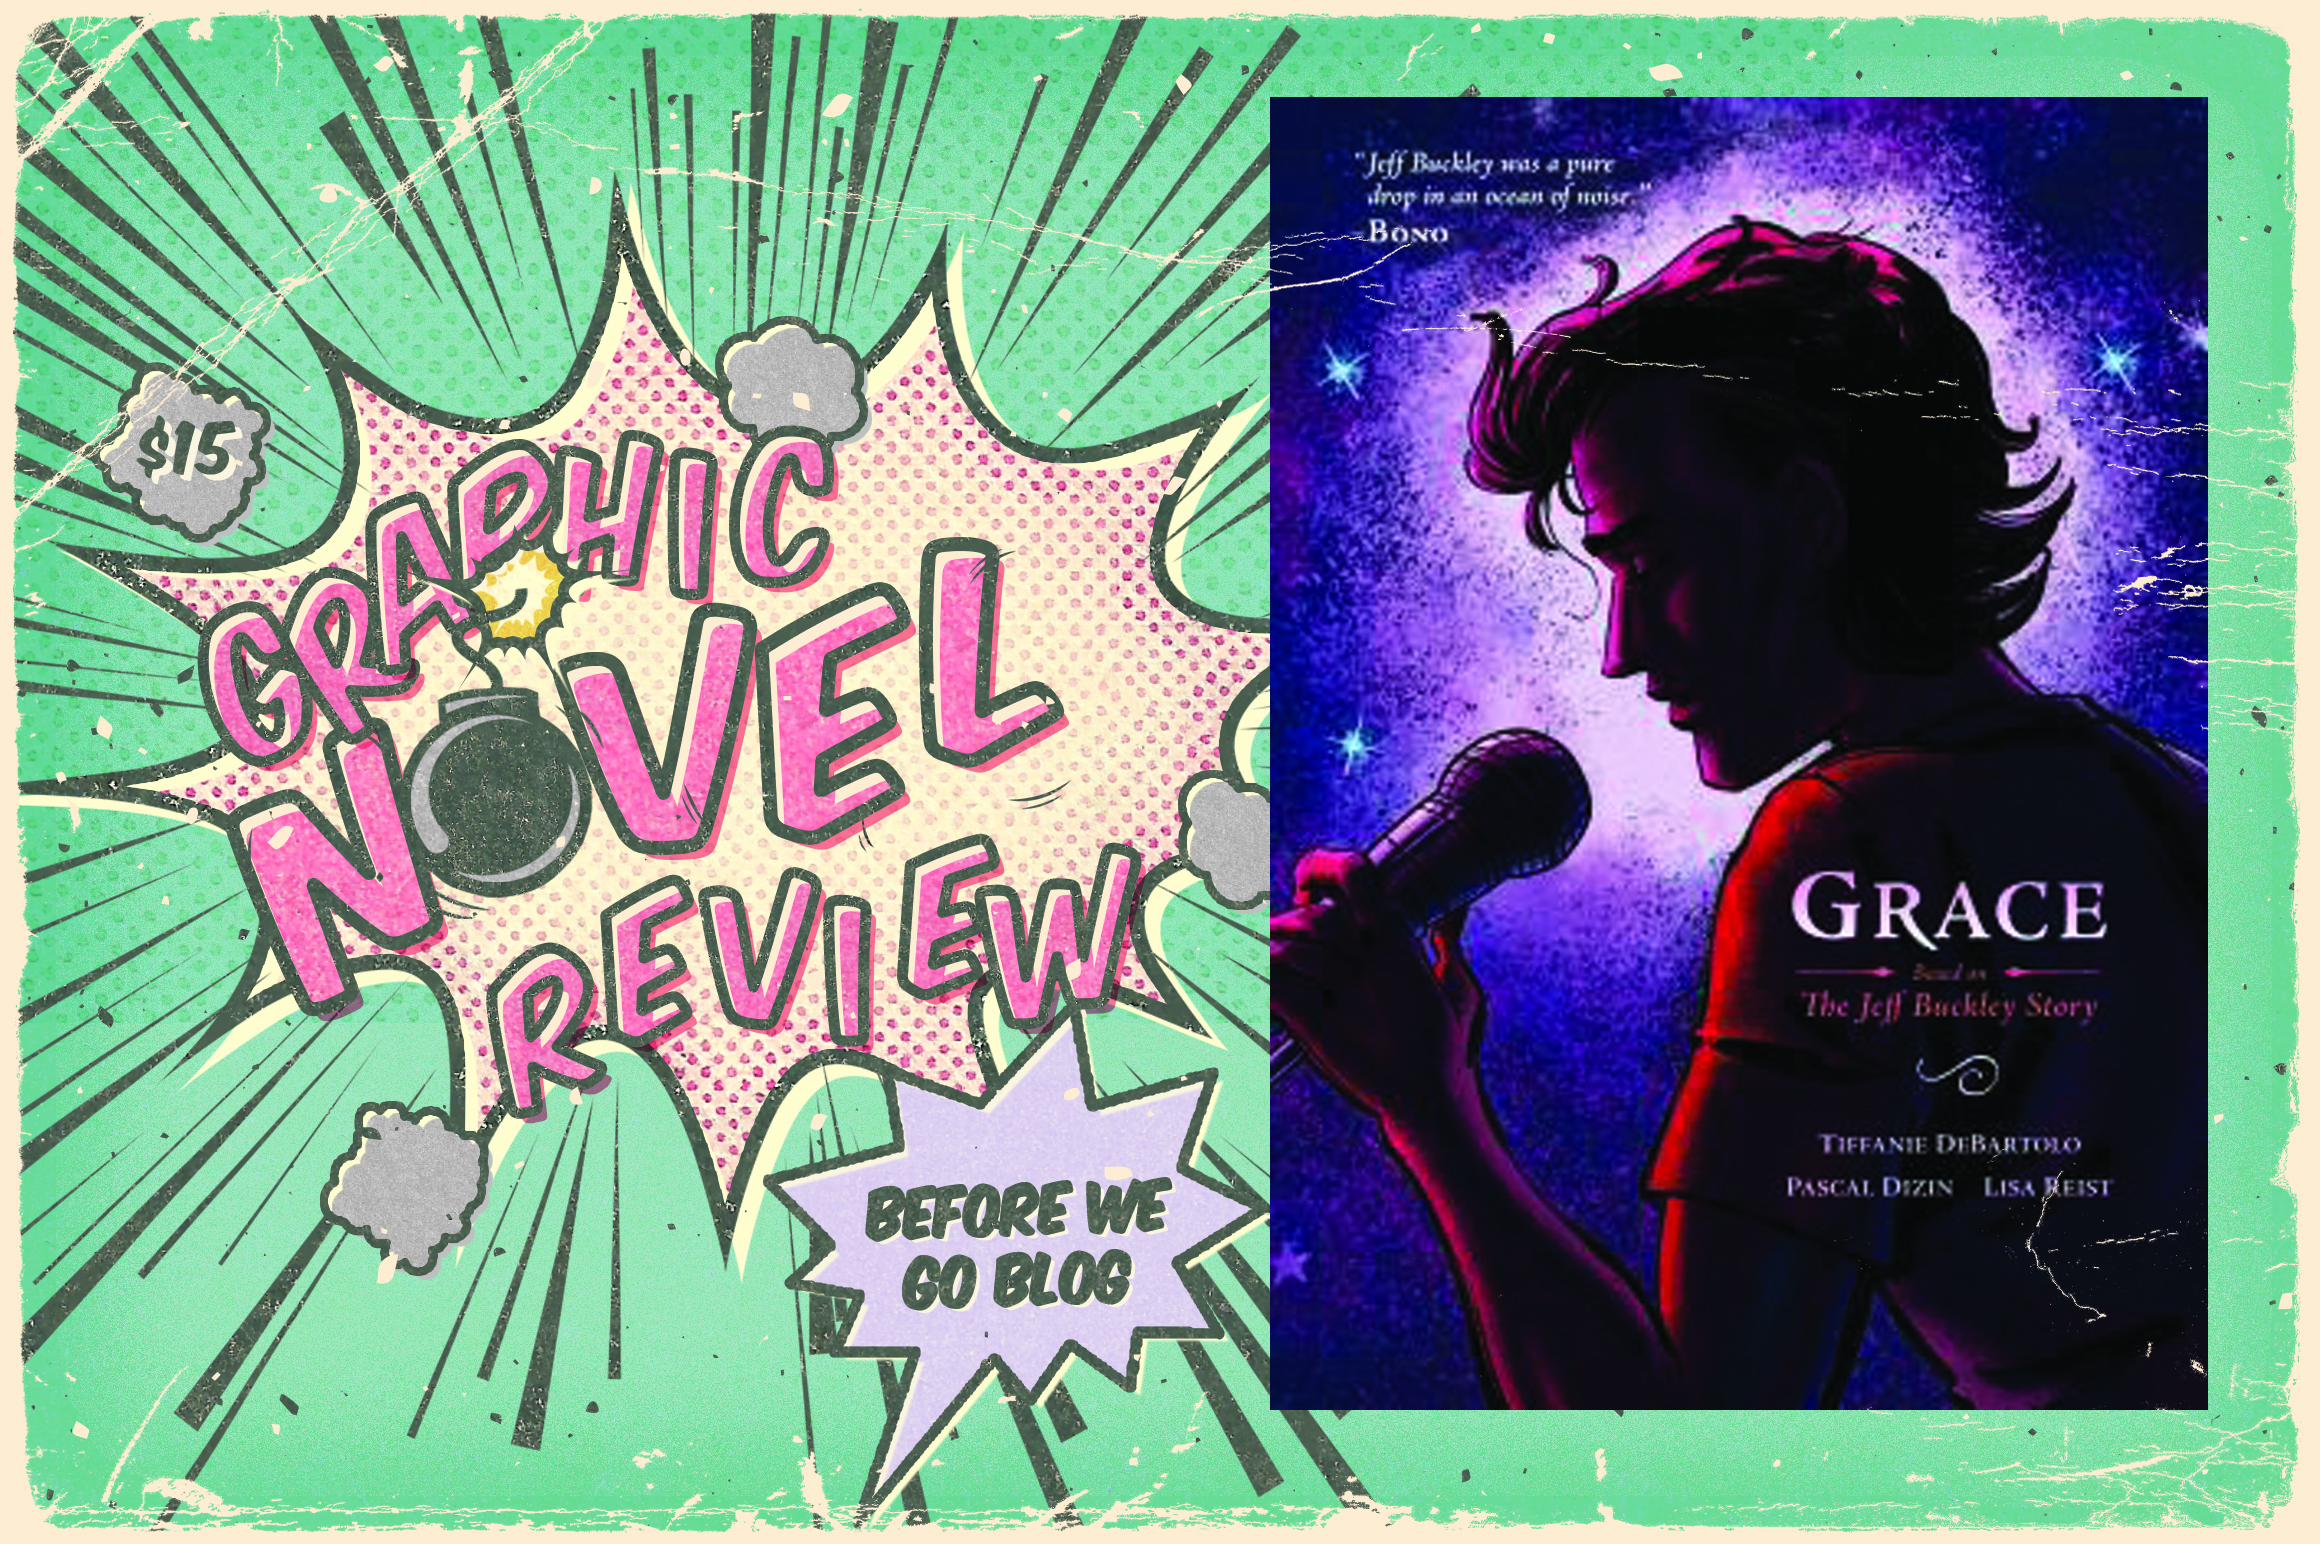 Graphic Novel Review – Grace: Based on the Jeff Buckley Story by Tiffanie DeBartolo